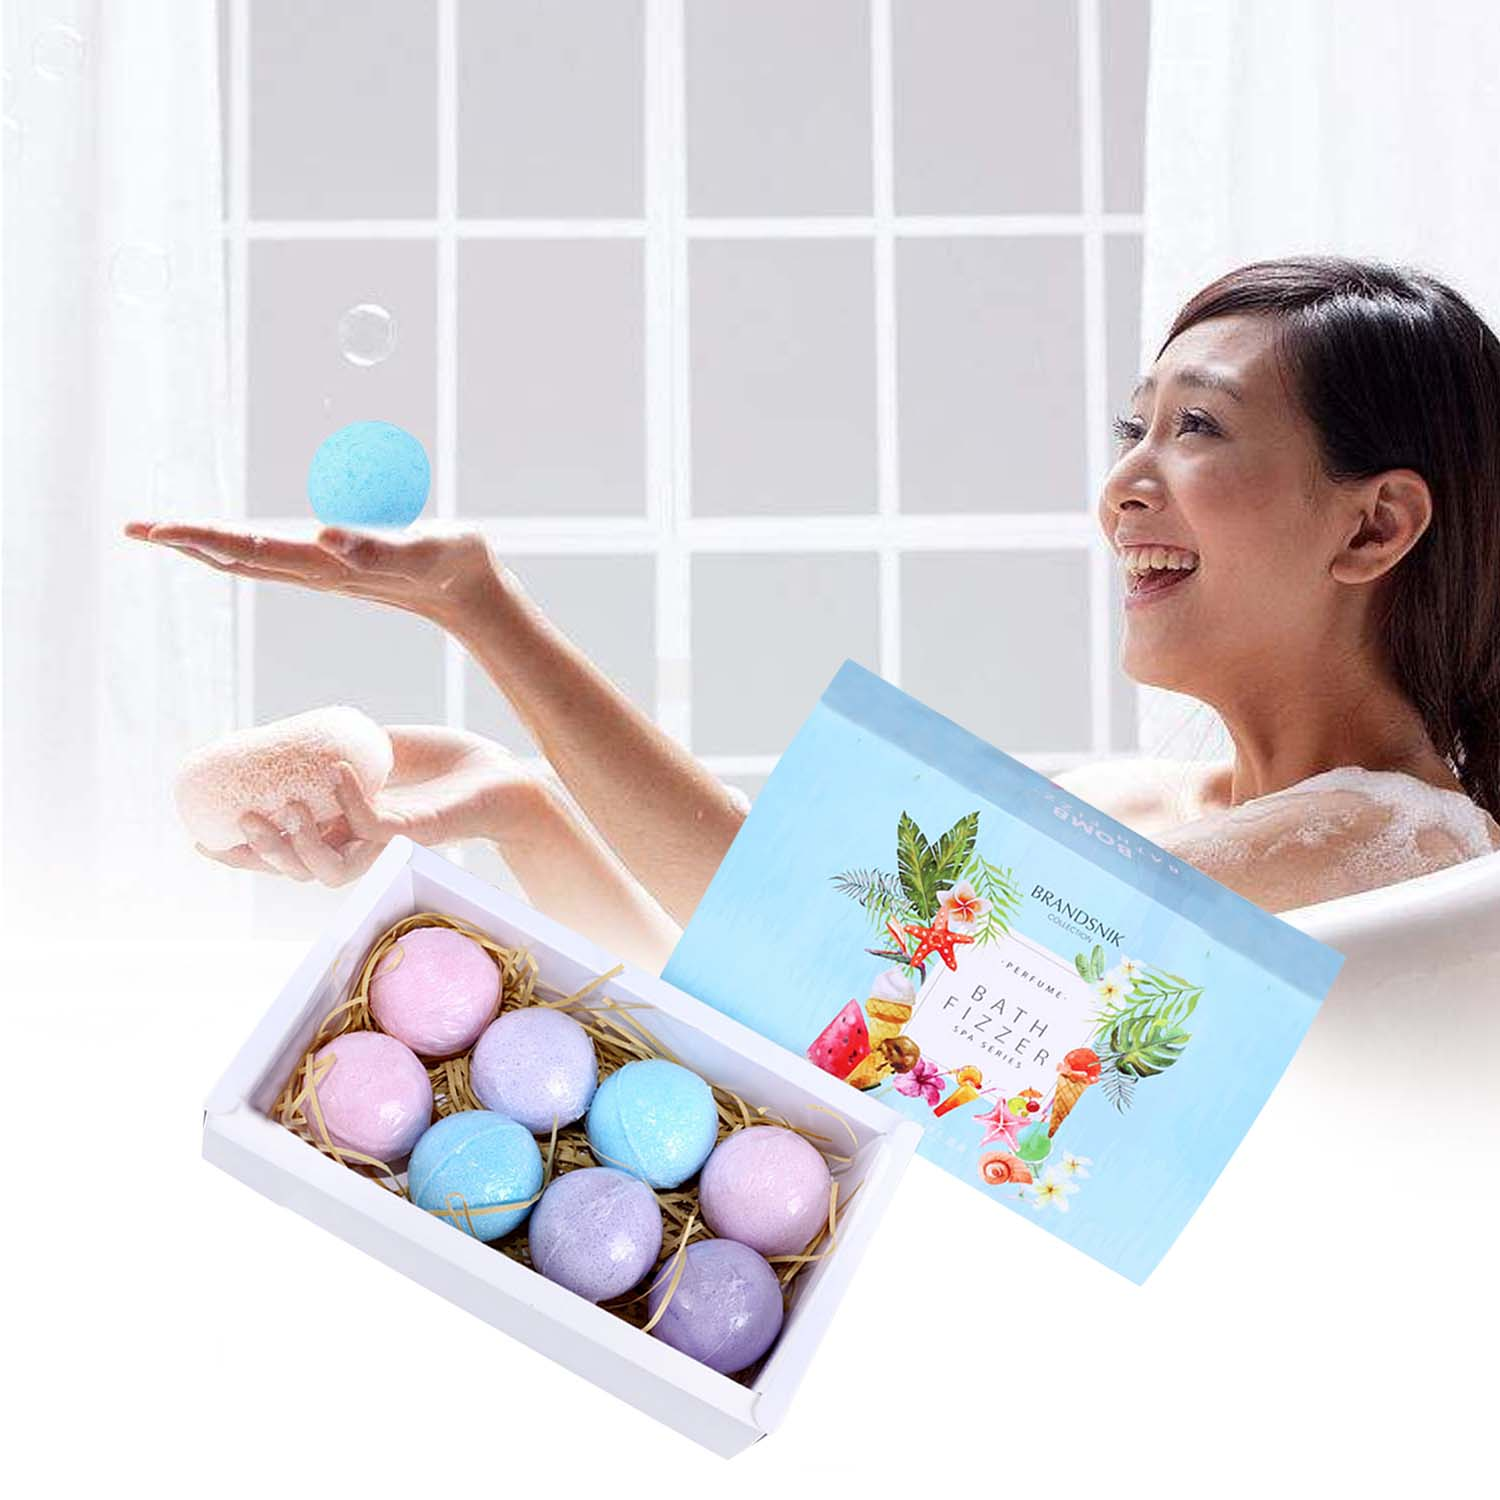 Behogar 8pcs Natural Spa Bath Bombs Ball Set with 3 Different Fragrance for Girl